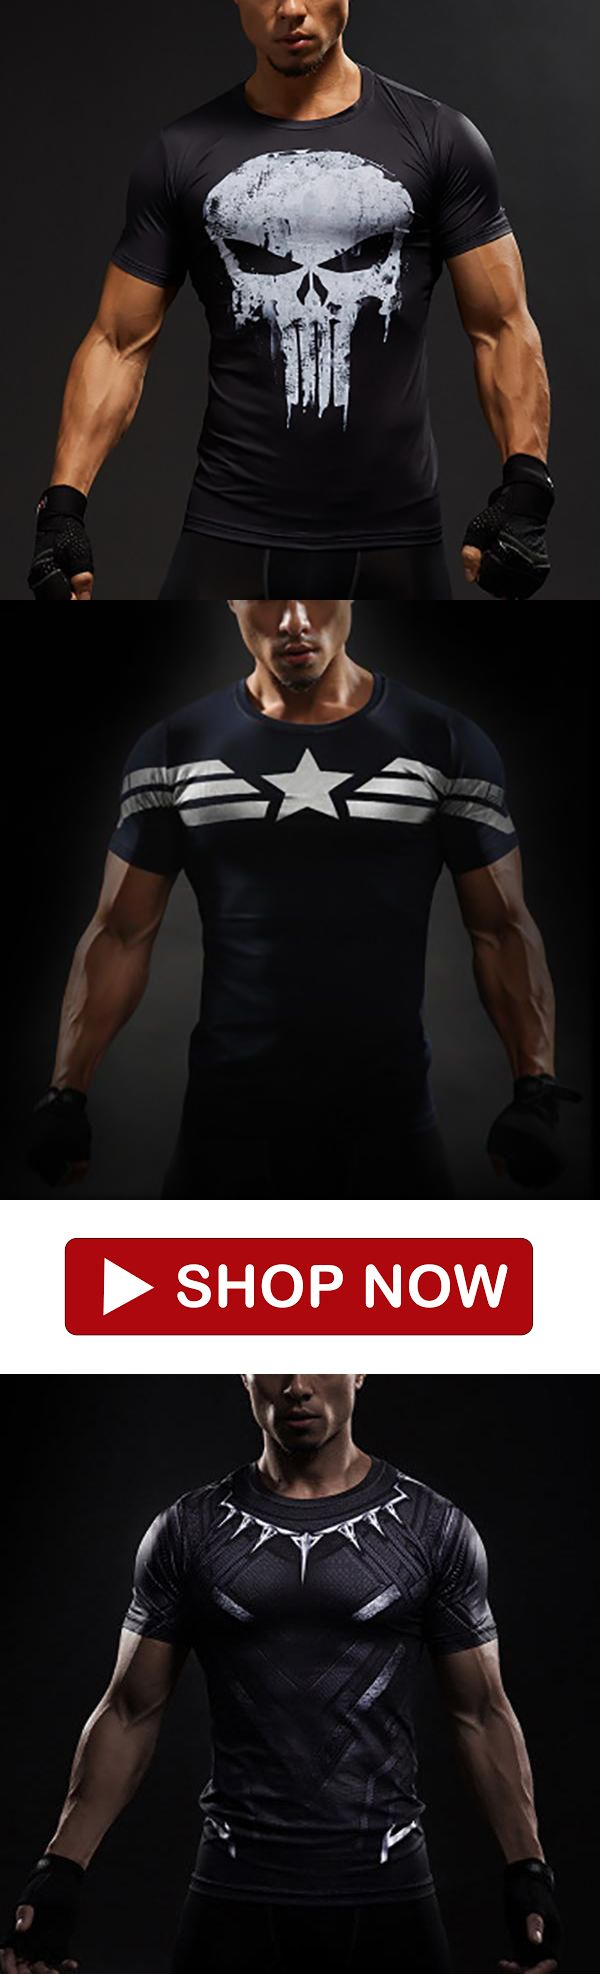 Up To Size 4XL Only USD$25.80  3D Marvel Avengers Captain America Gym Workout T-...